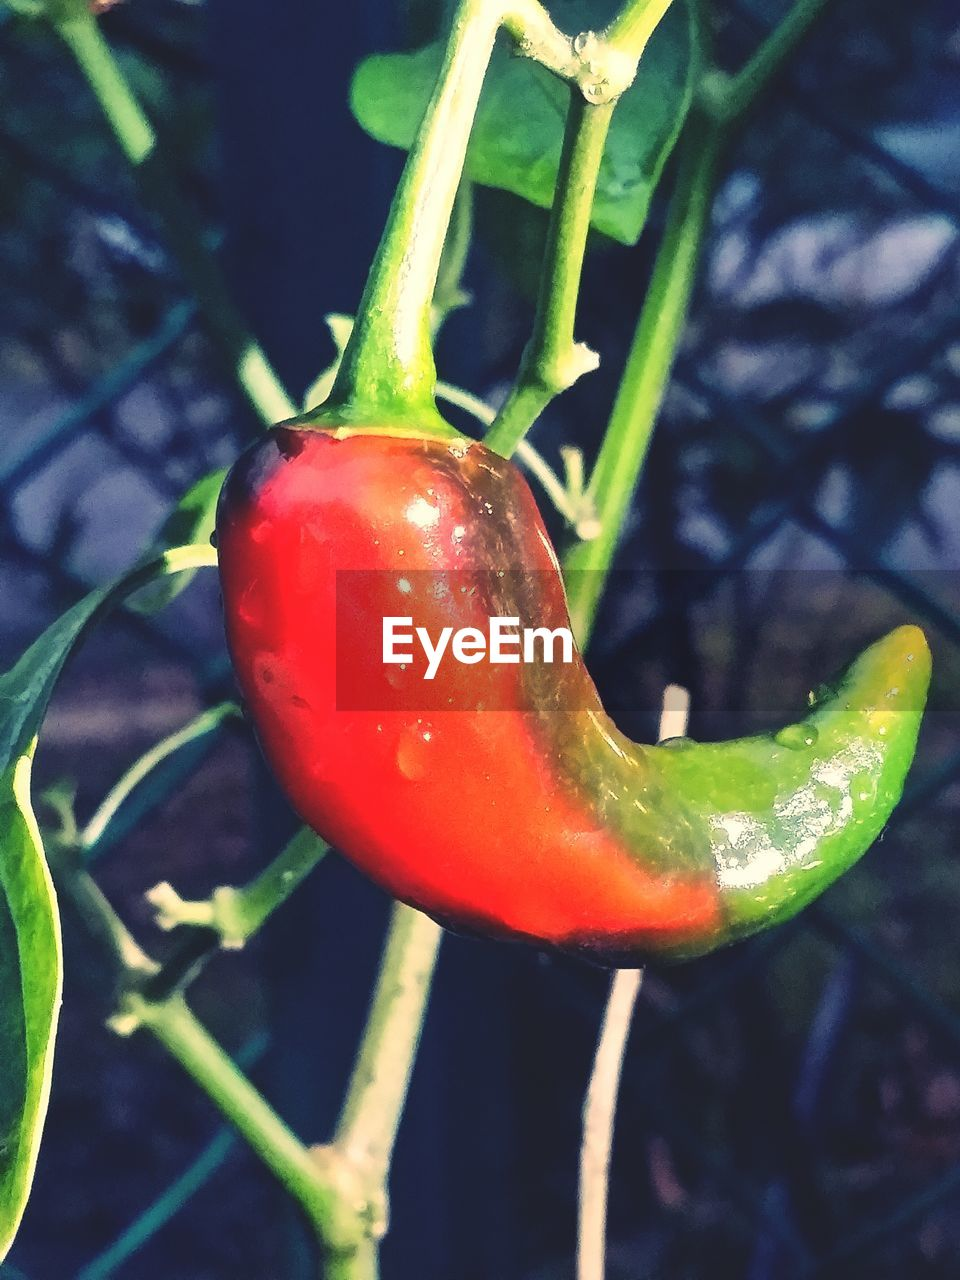 growth, red, close-up, nature, plant, no people, freshness, green color, vegetable, outdoors, day, beauty in nature, food